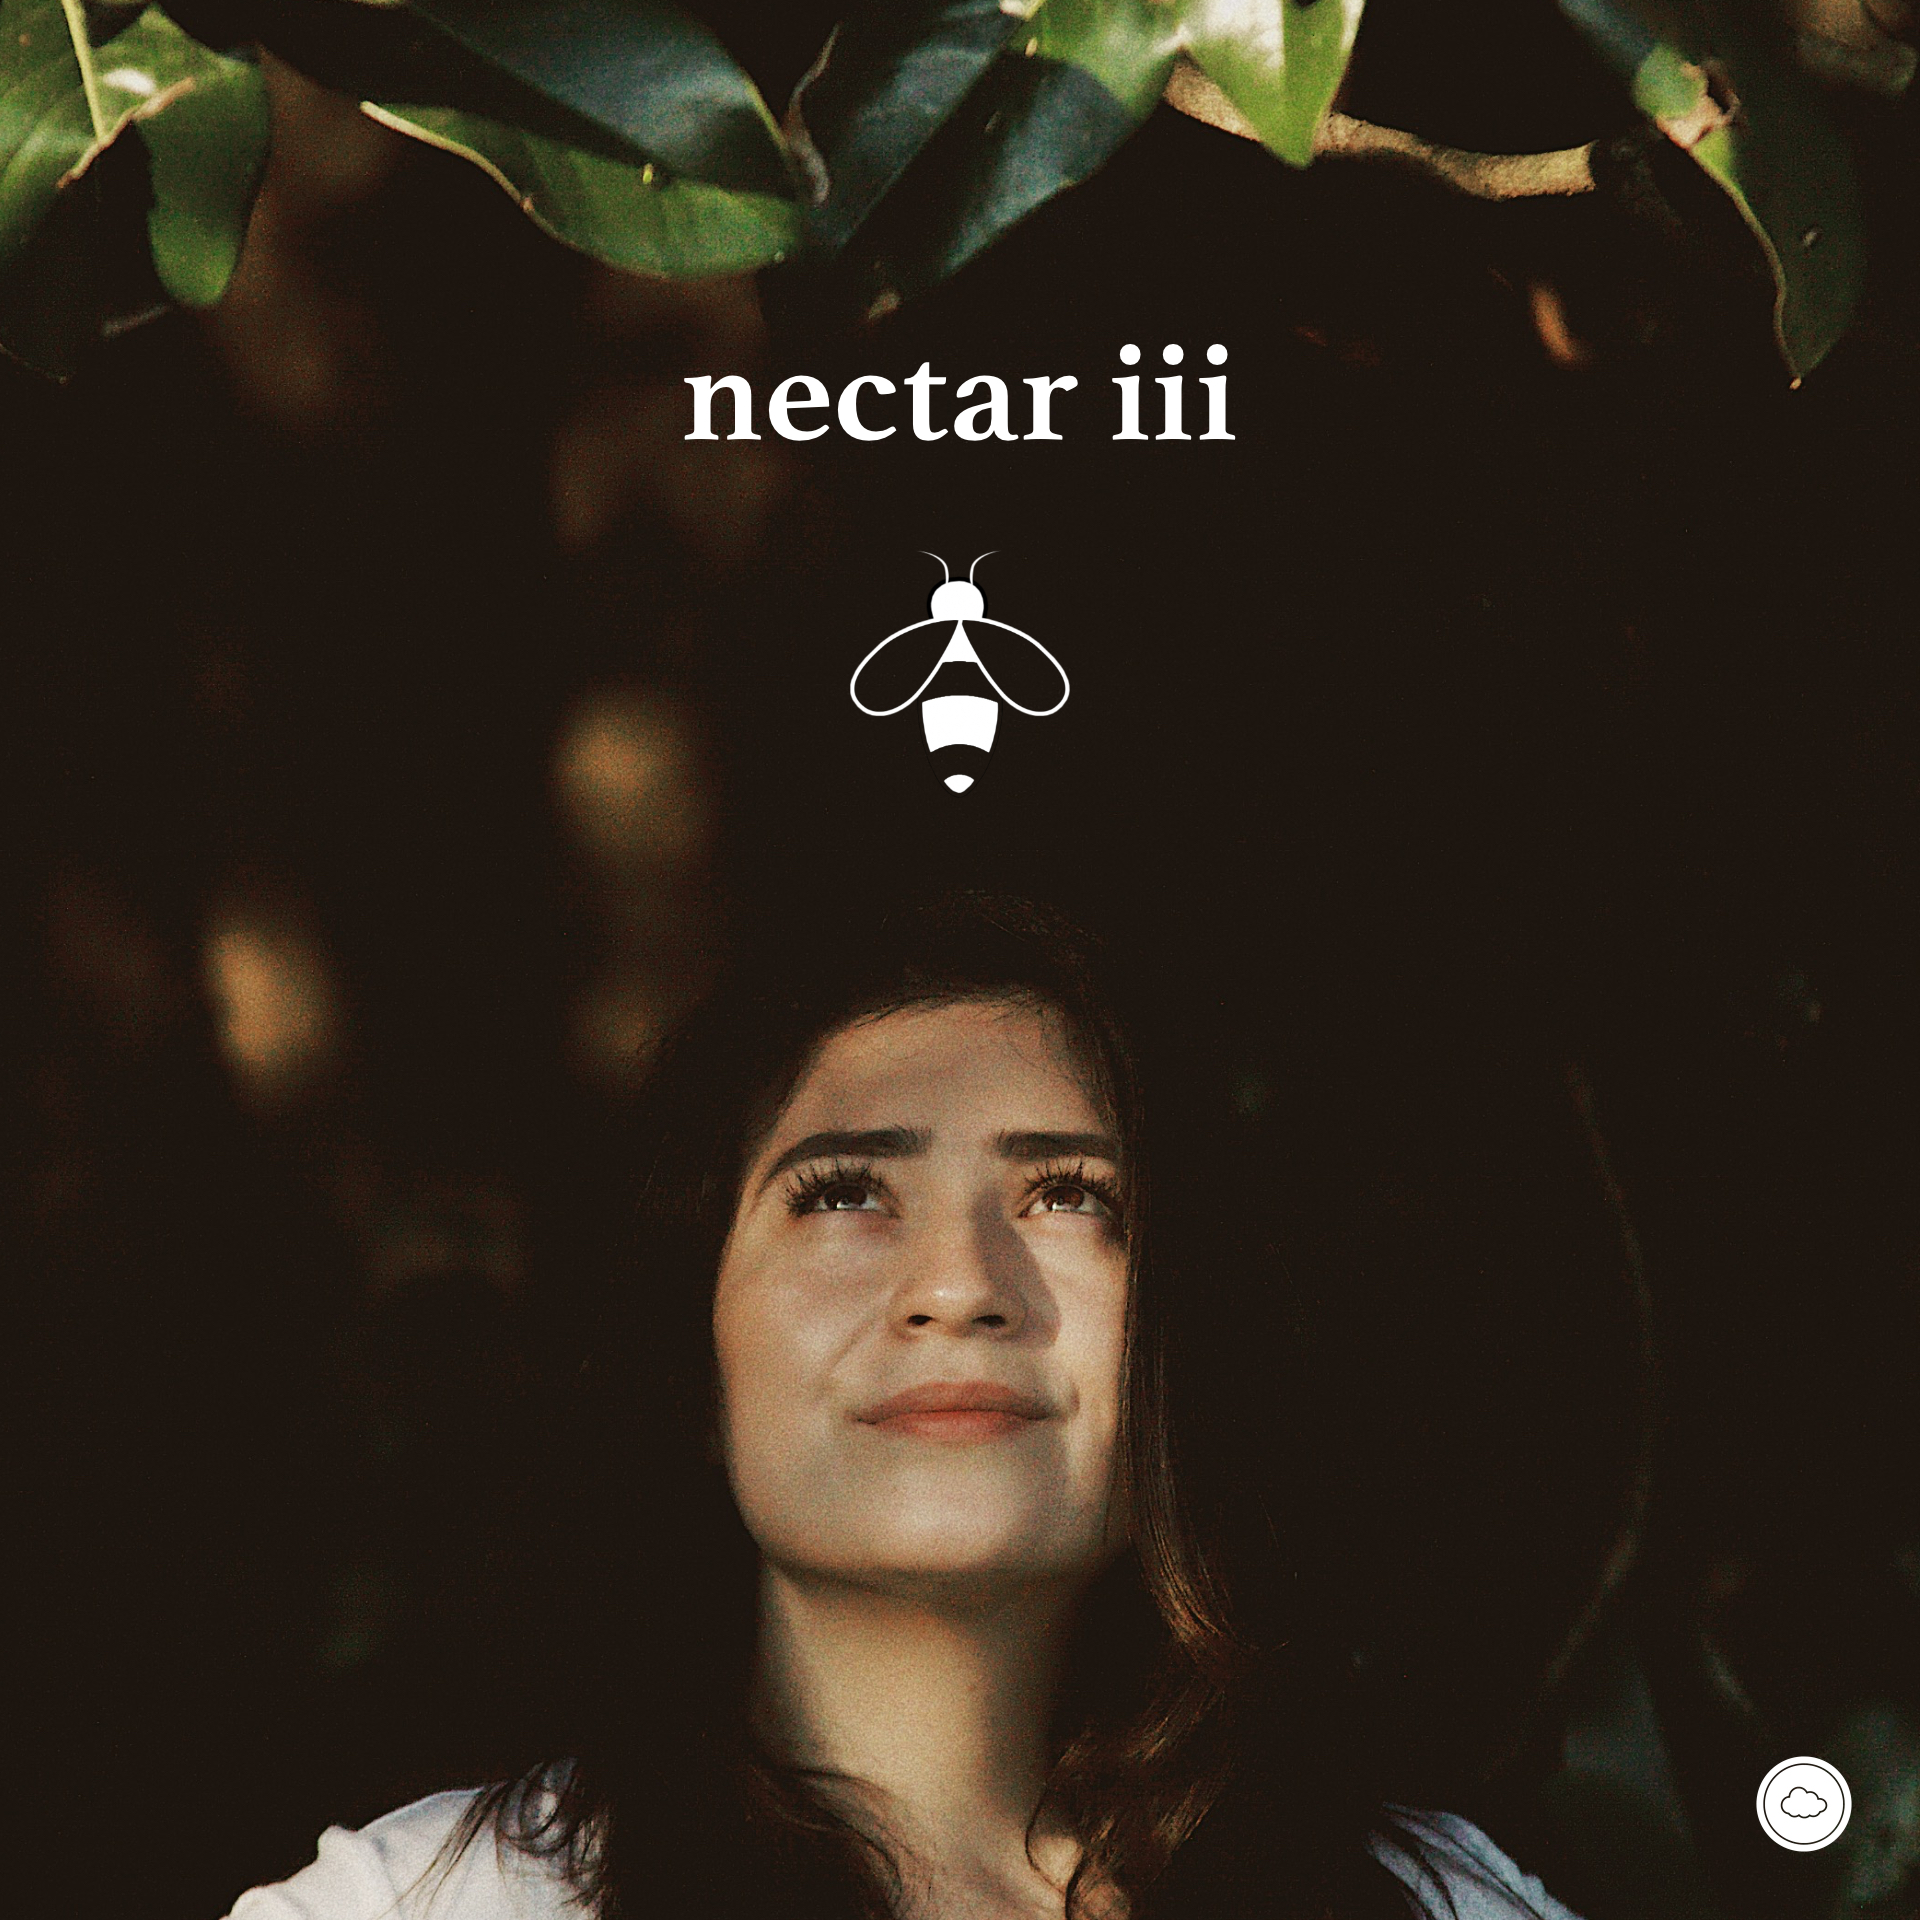 Nectar III   Not ready to let go of Summer? Neither are we. So naturally, we made a playlist. Featuring local talent like Beta Likhari and ESHOVO. | Curated with love by The Whiff Co.